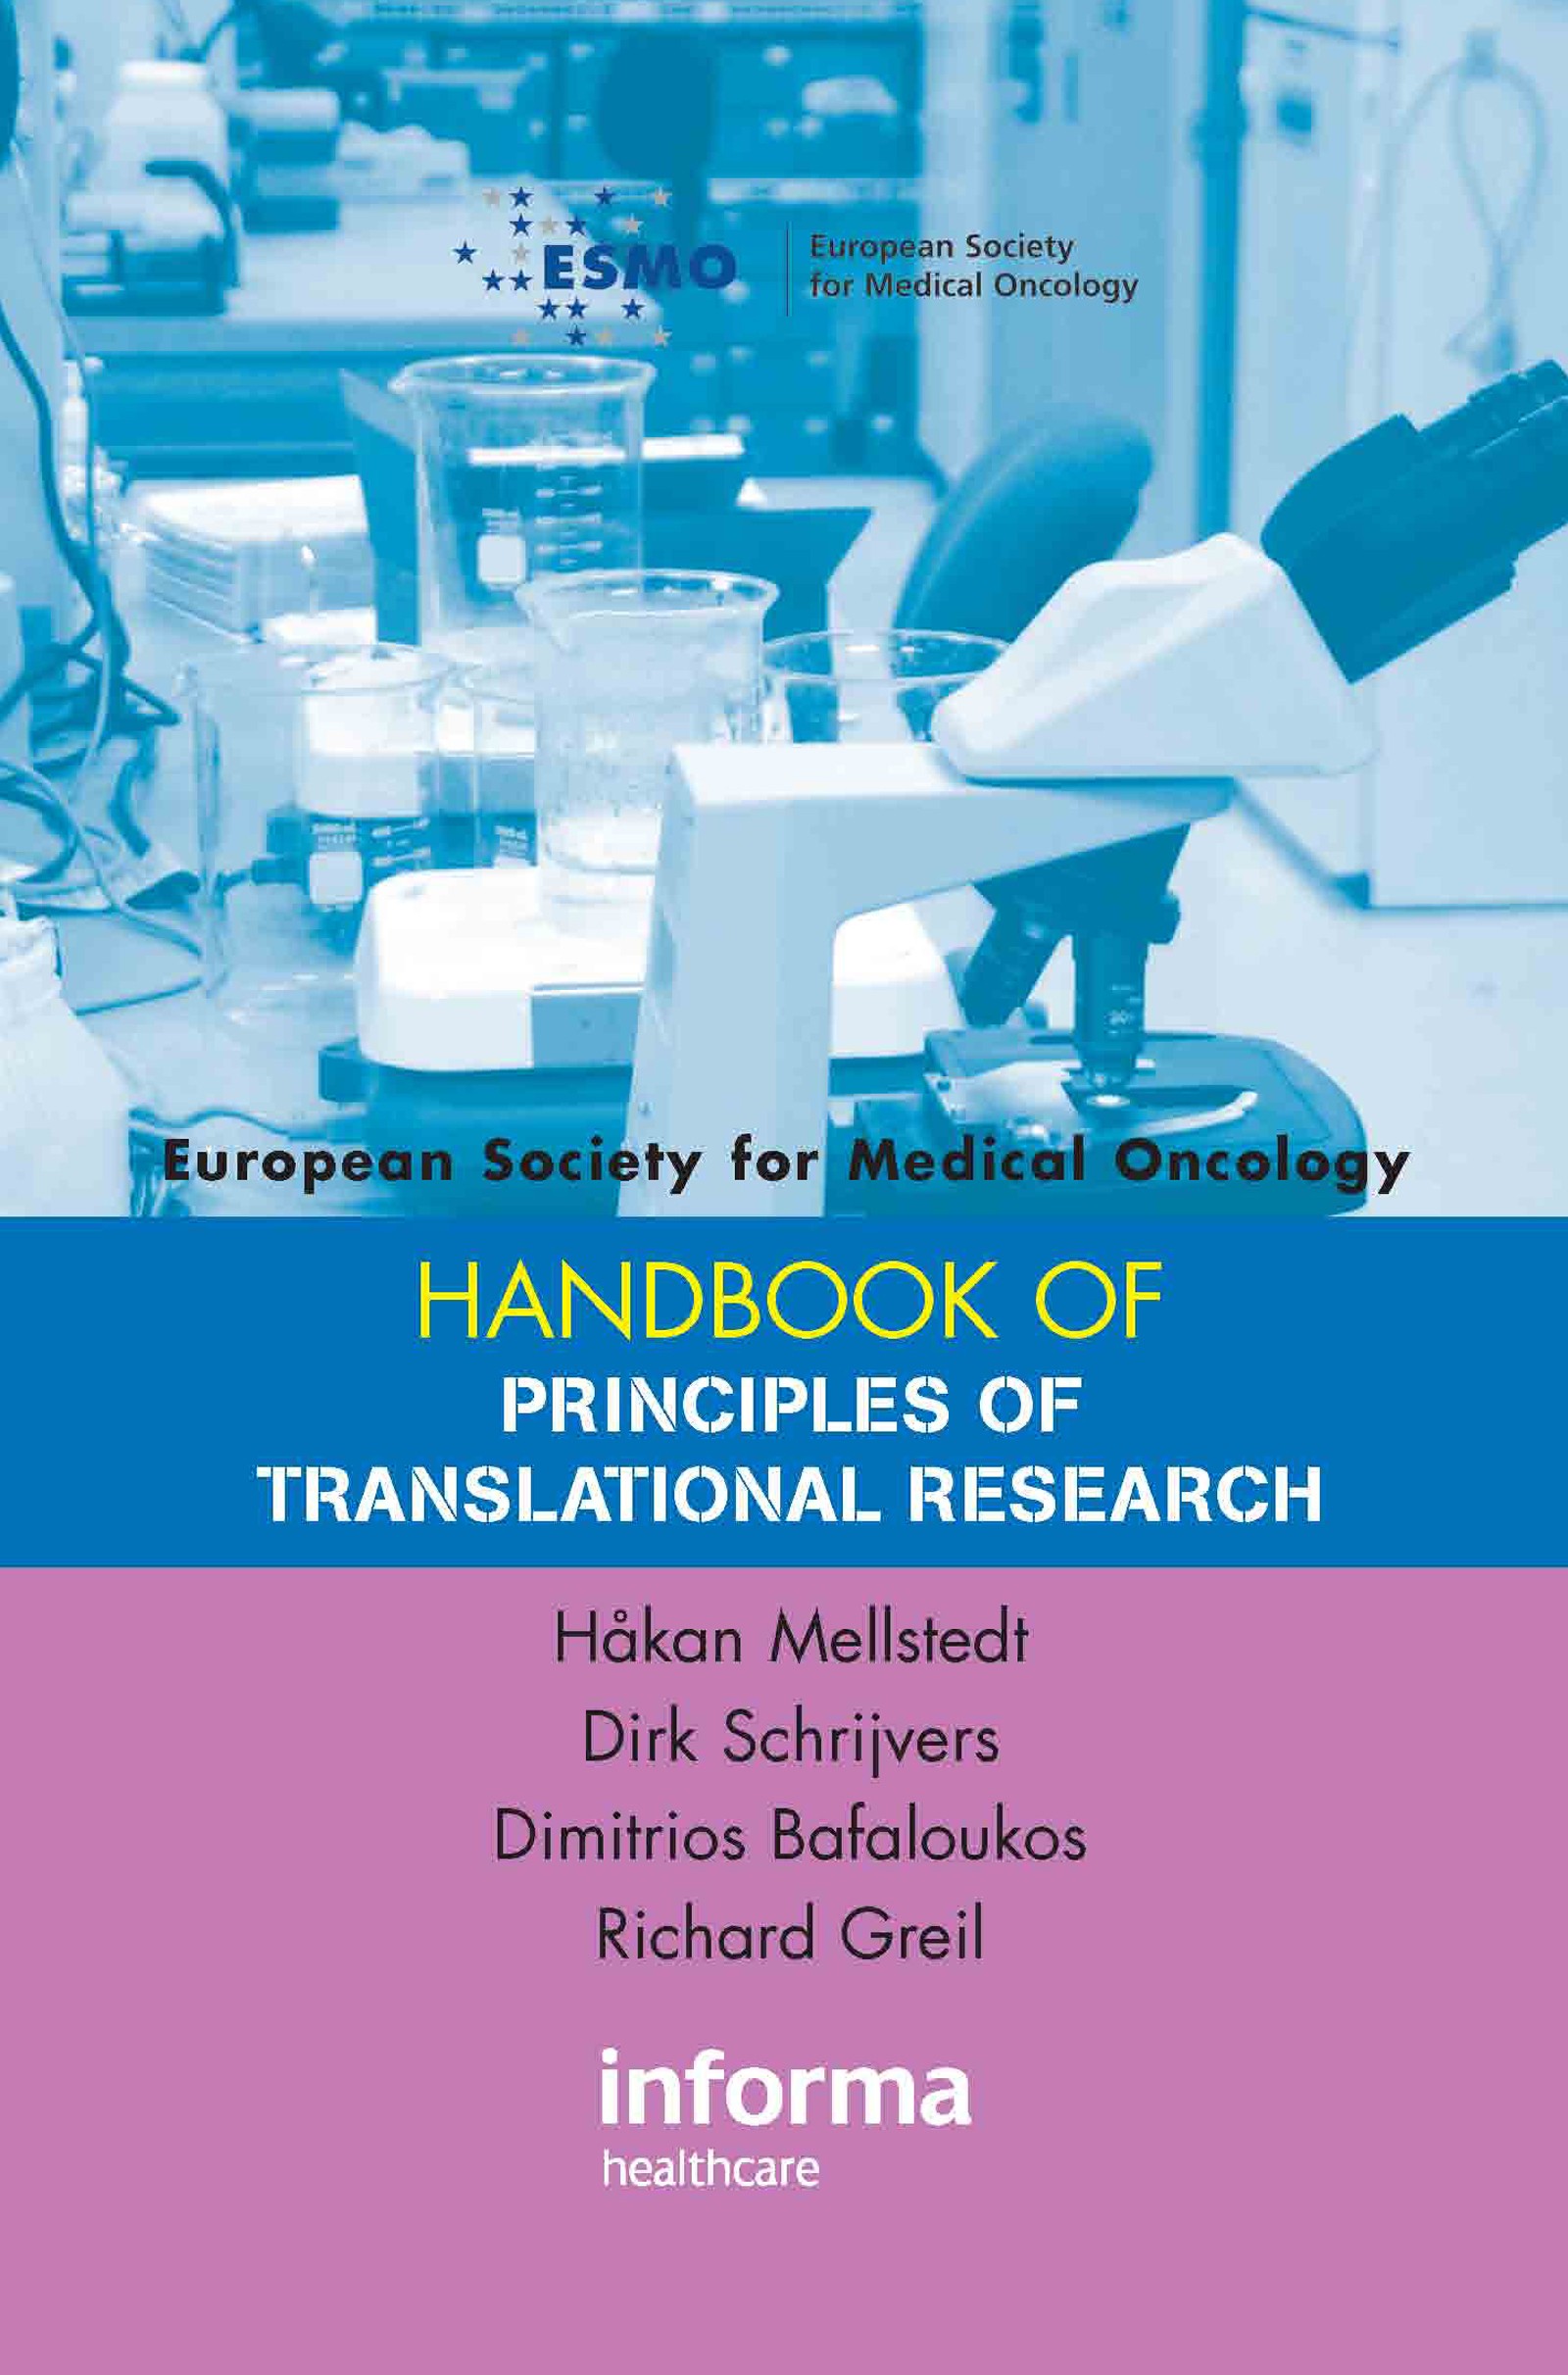 ESMO Handbook on Principles of Translational Research book cover